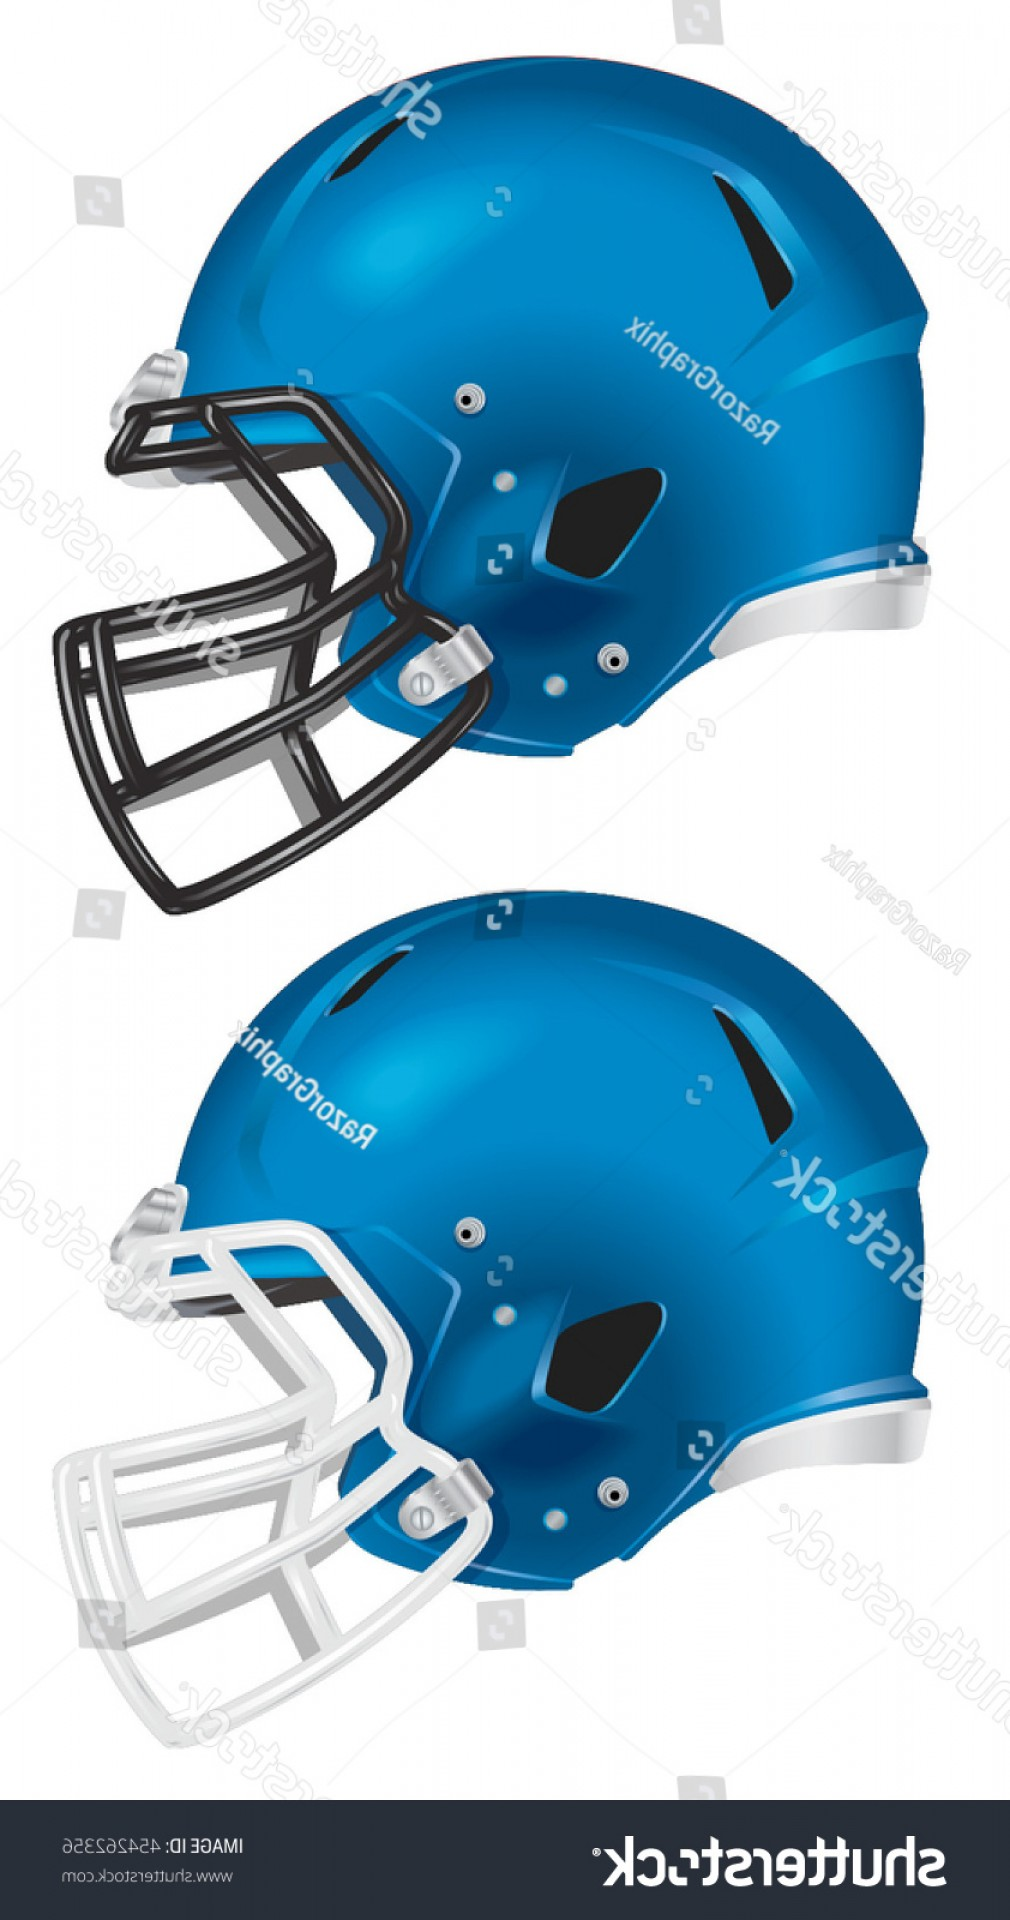 Seahawks Helmet Vector: Side View Blue Football Helmet Vector